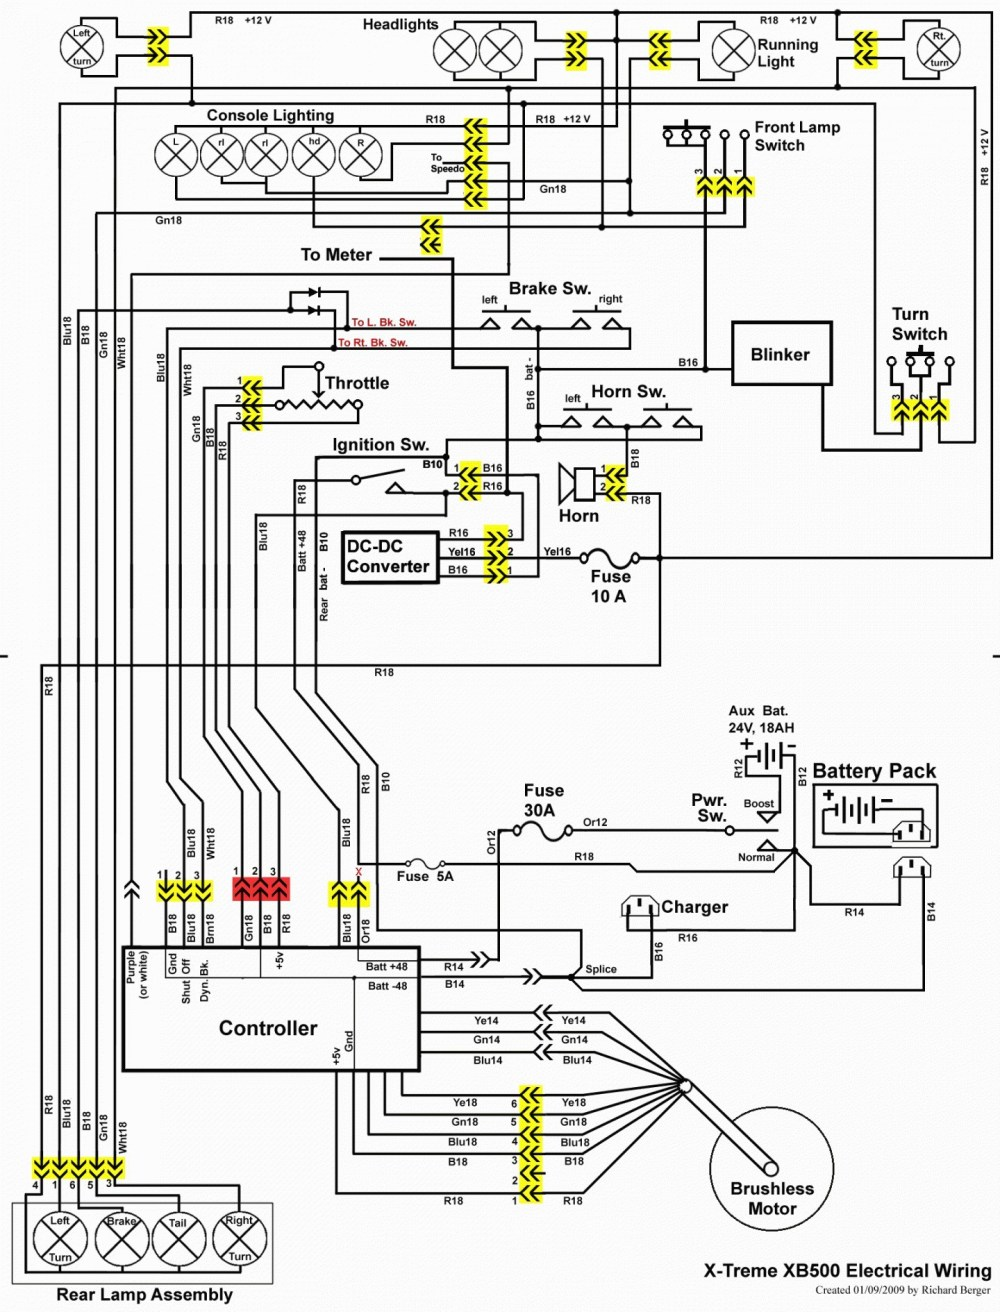 medium resolution of tao tao vip 50cc scooter wiring diagram wiring diagram portal taotao 50cc scooter wiring diagram tao 50 scooter wiring diagram